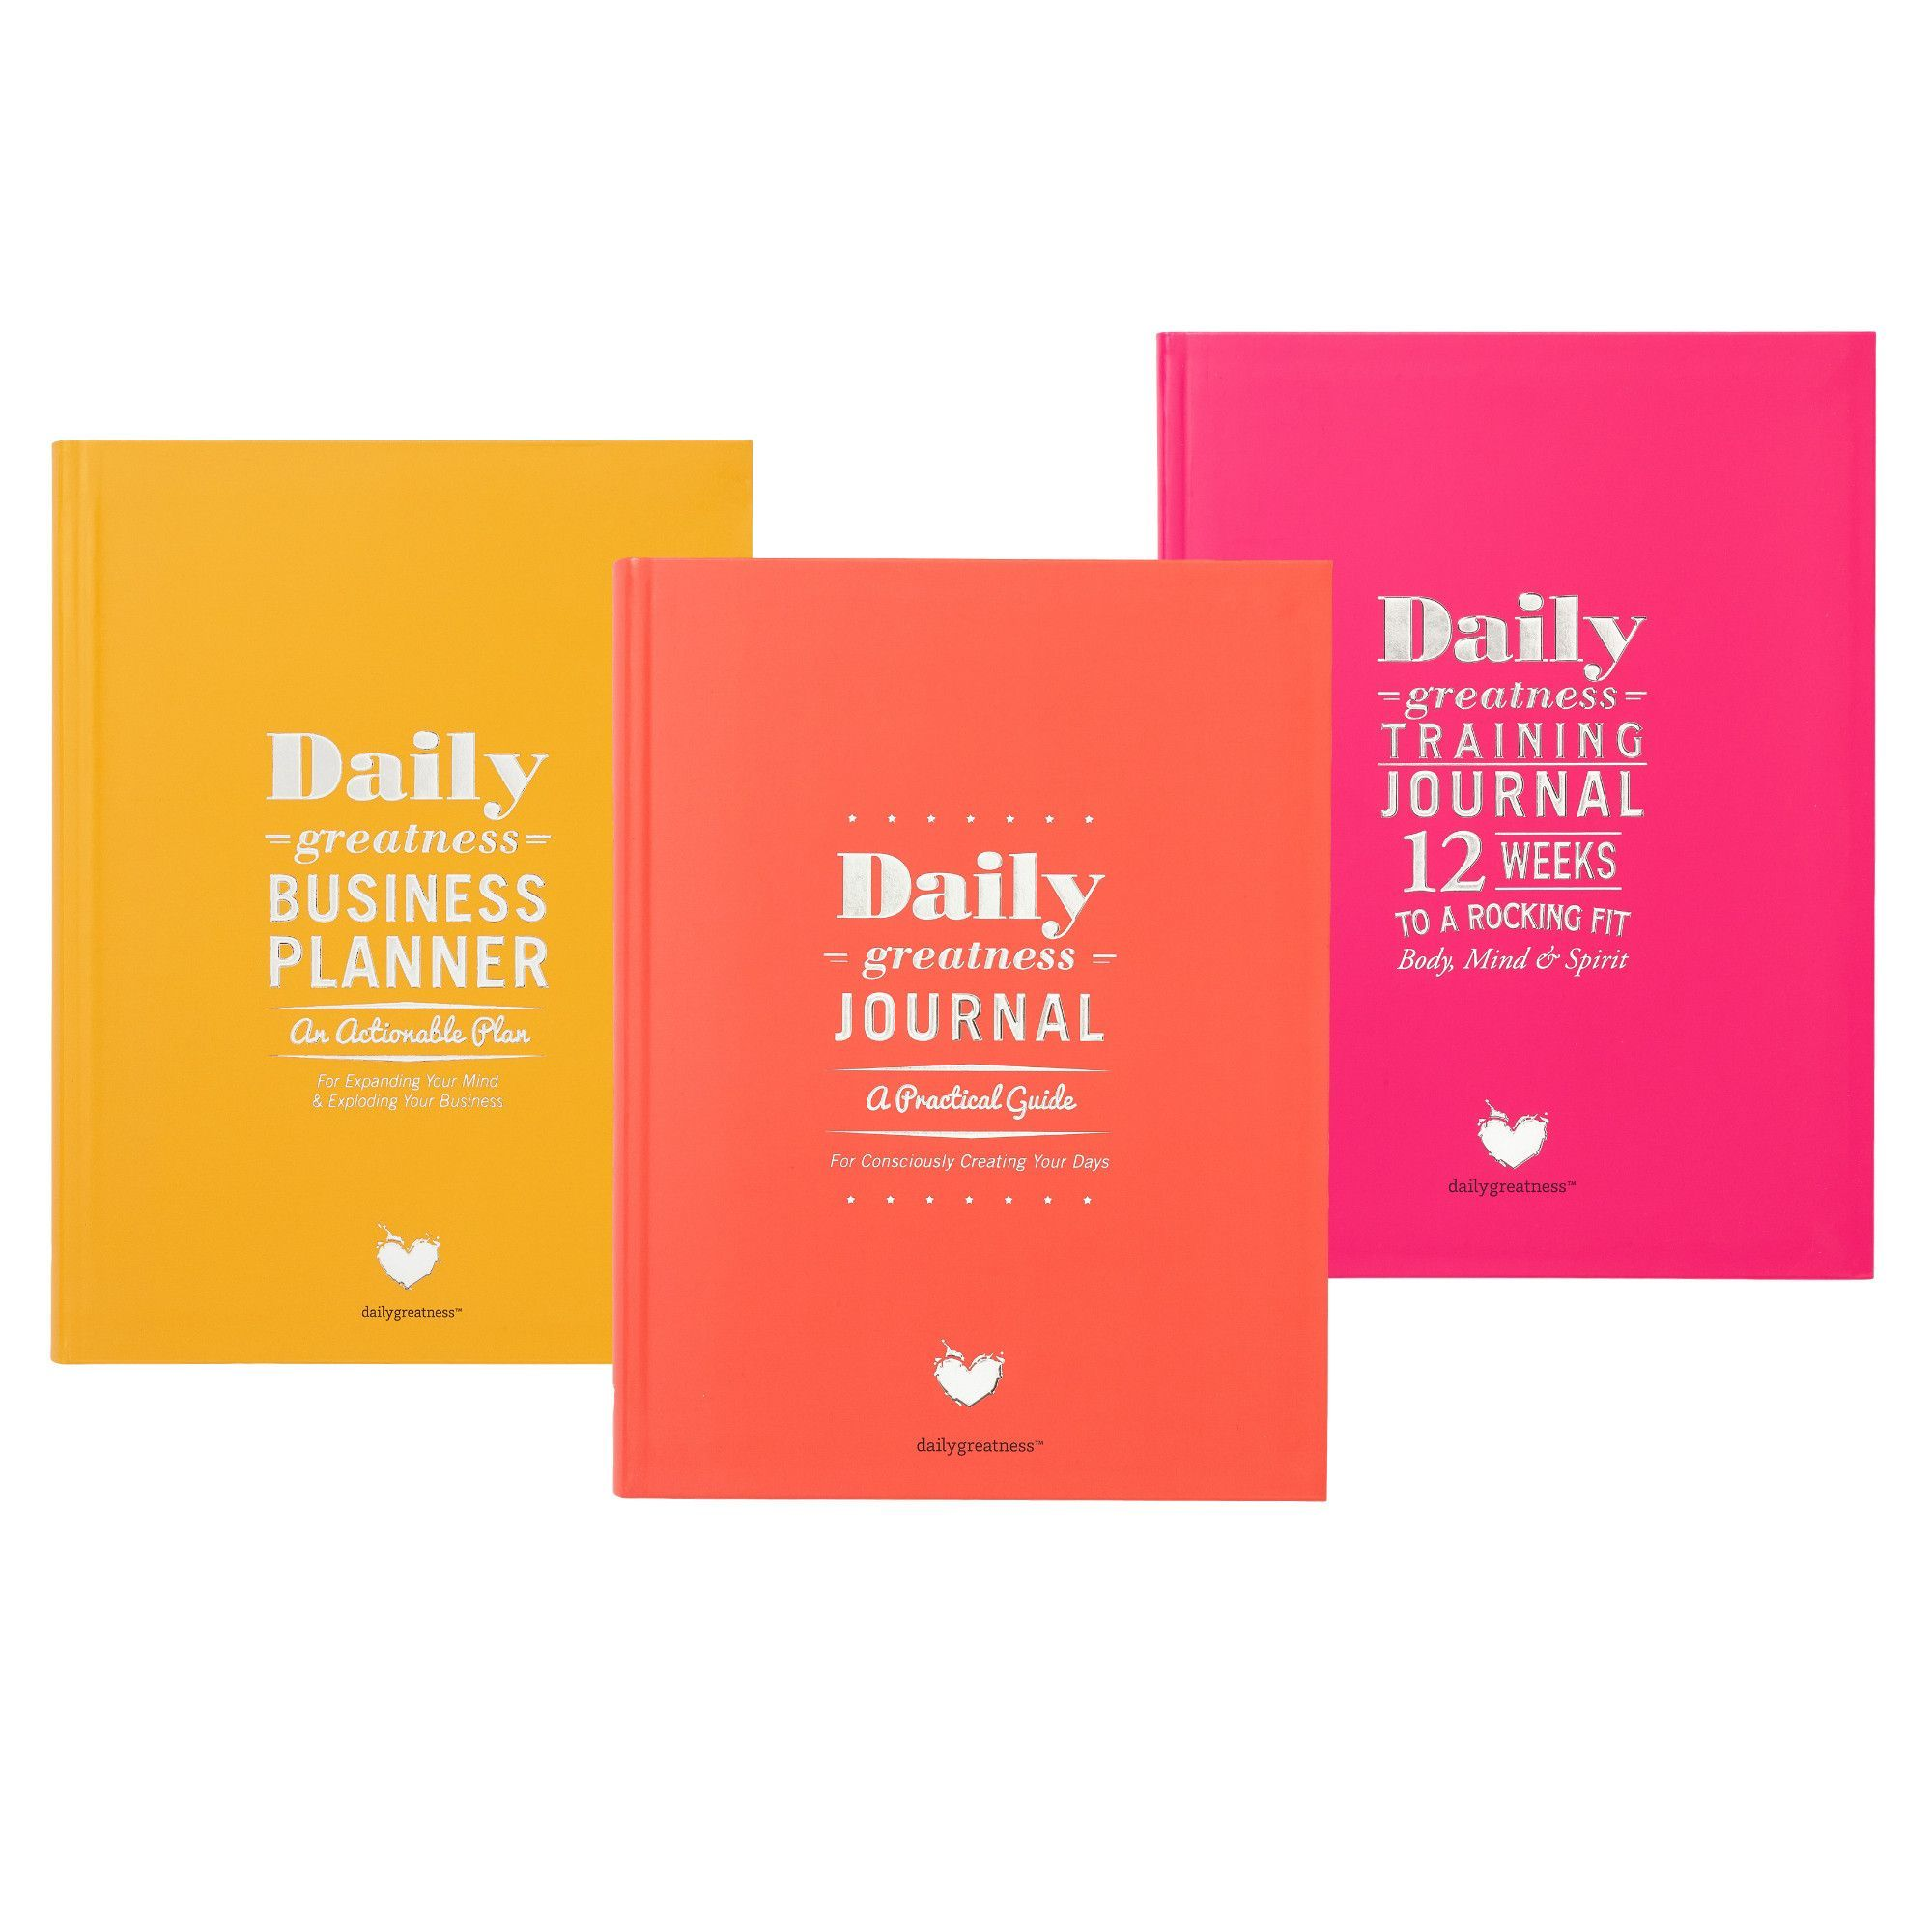 Dailygreatness Journal Box Set Business daily planner